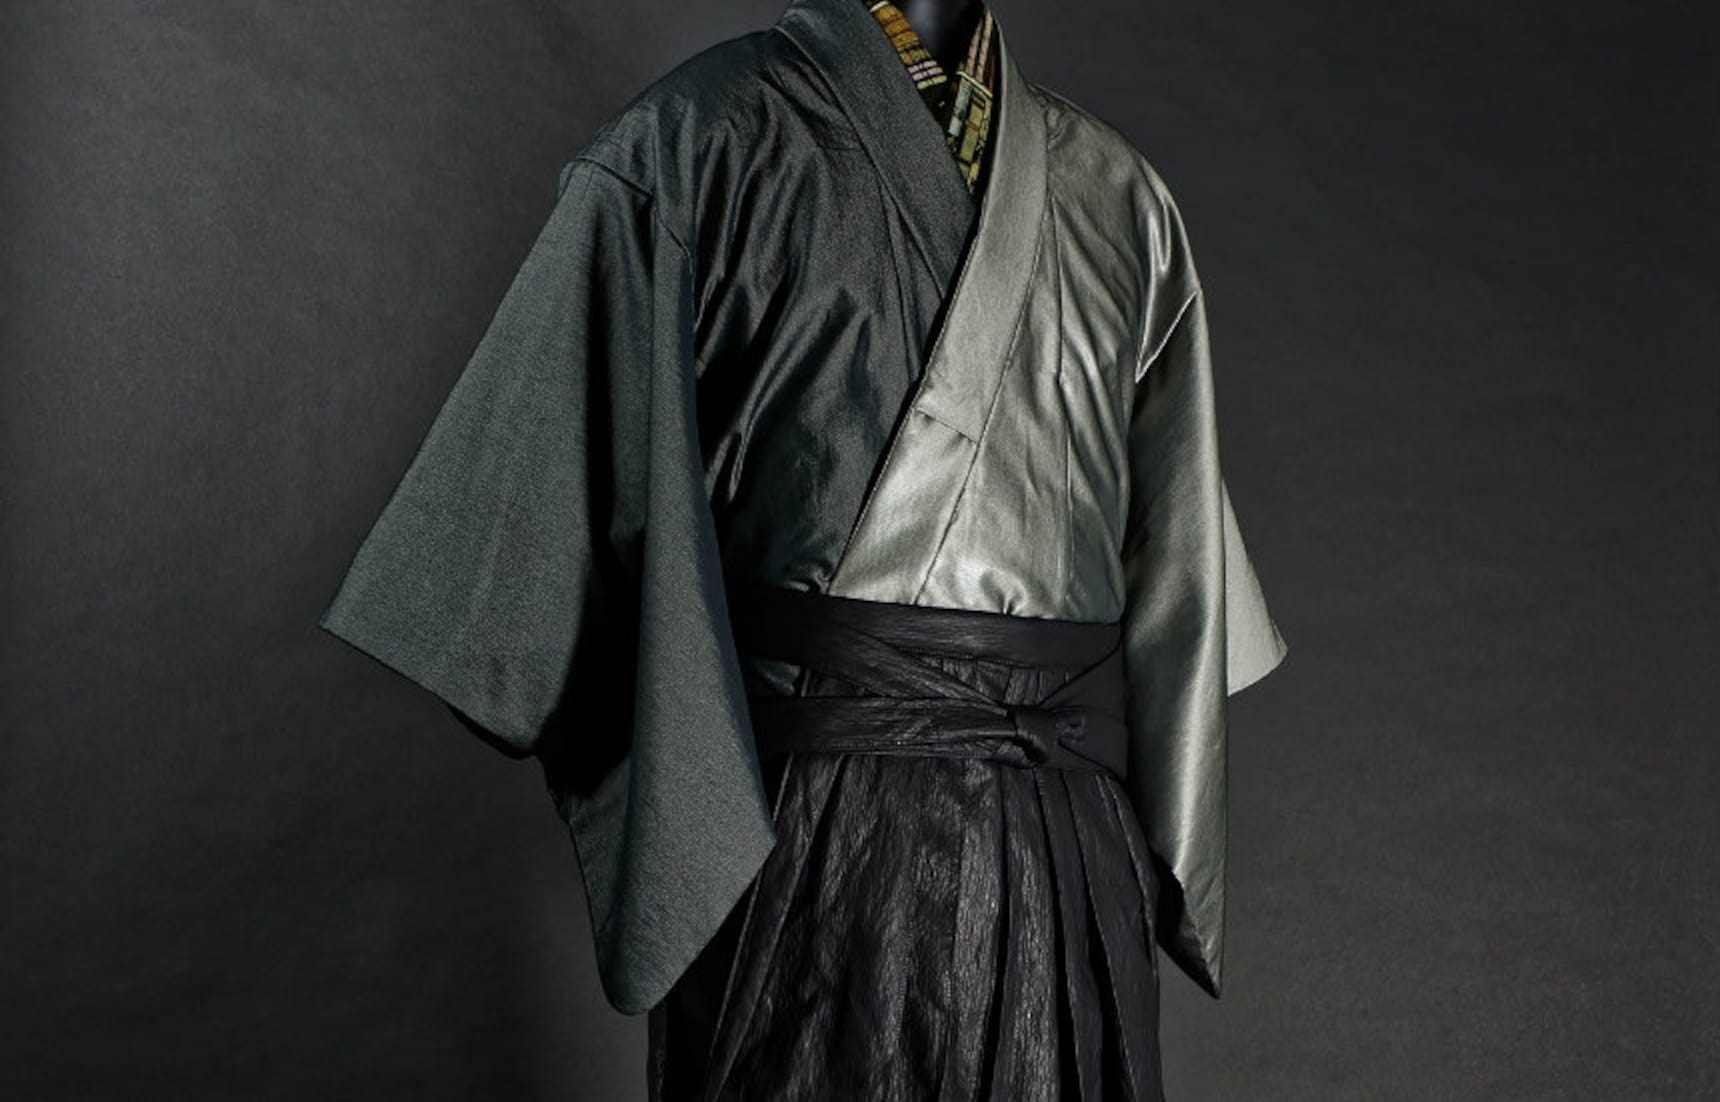 Samurai Attire for the Modern Gentleman